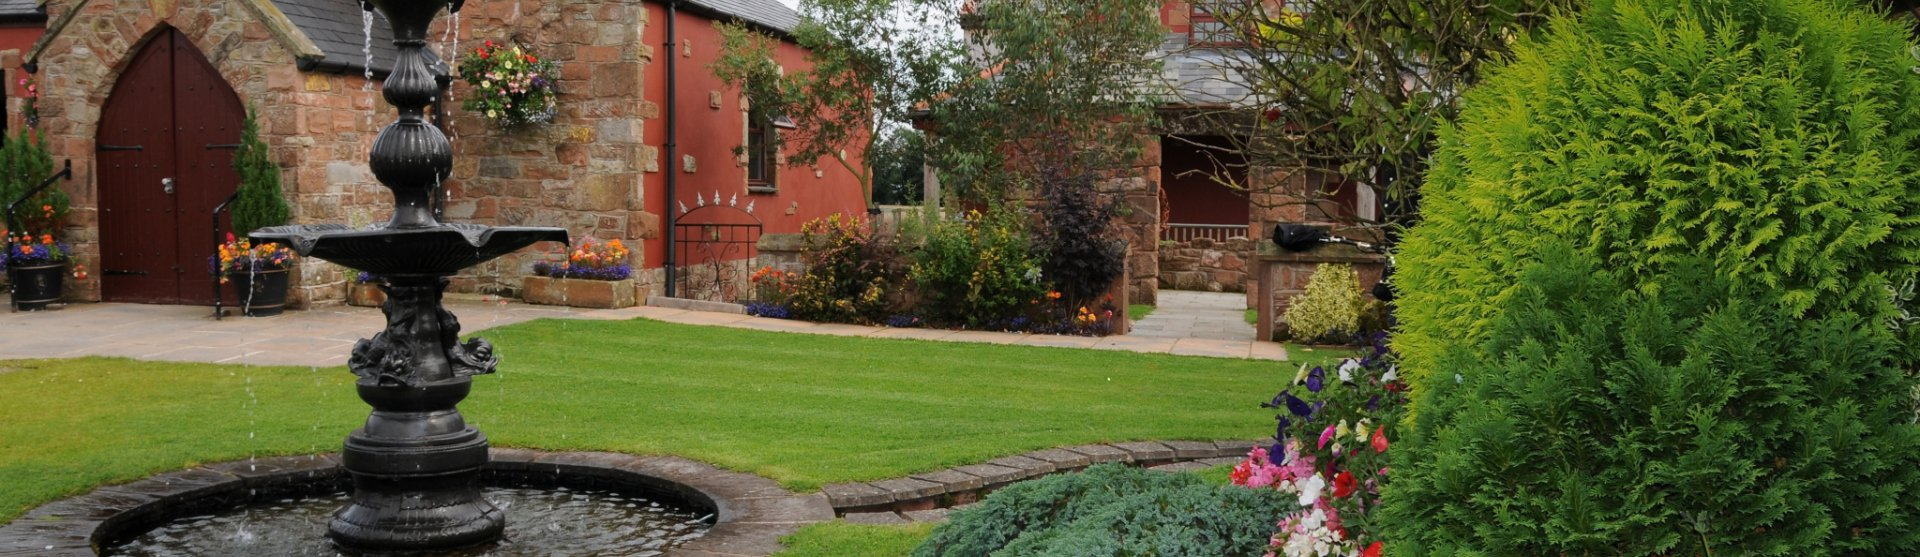 Exclusive Use Wedding Venue near Gretna Green - The Mill Forge